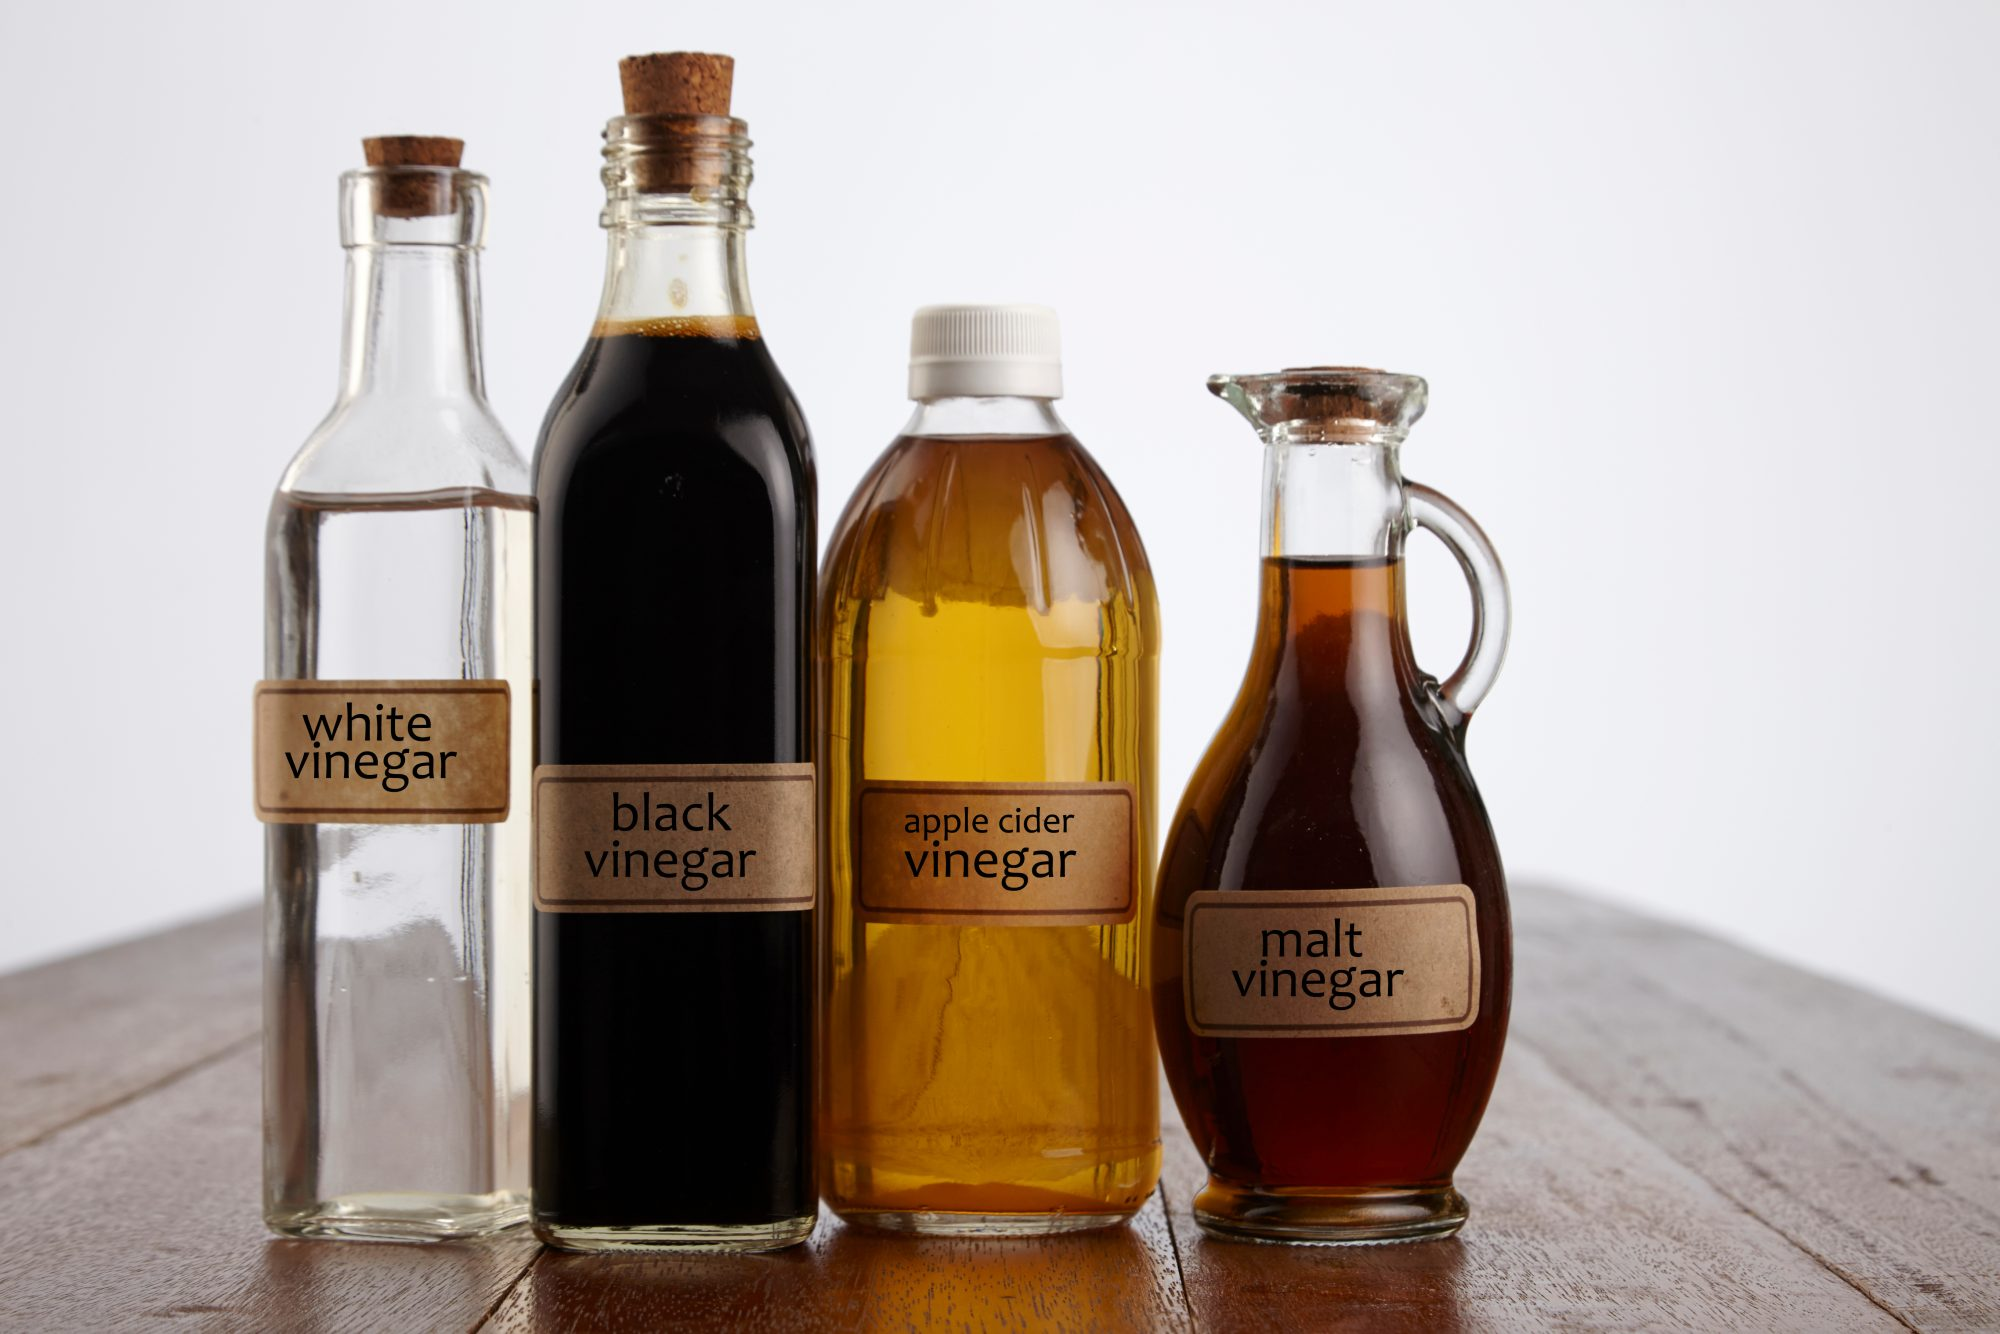 Types of Vinegar Getty 3/12/20